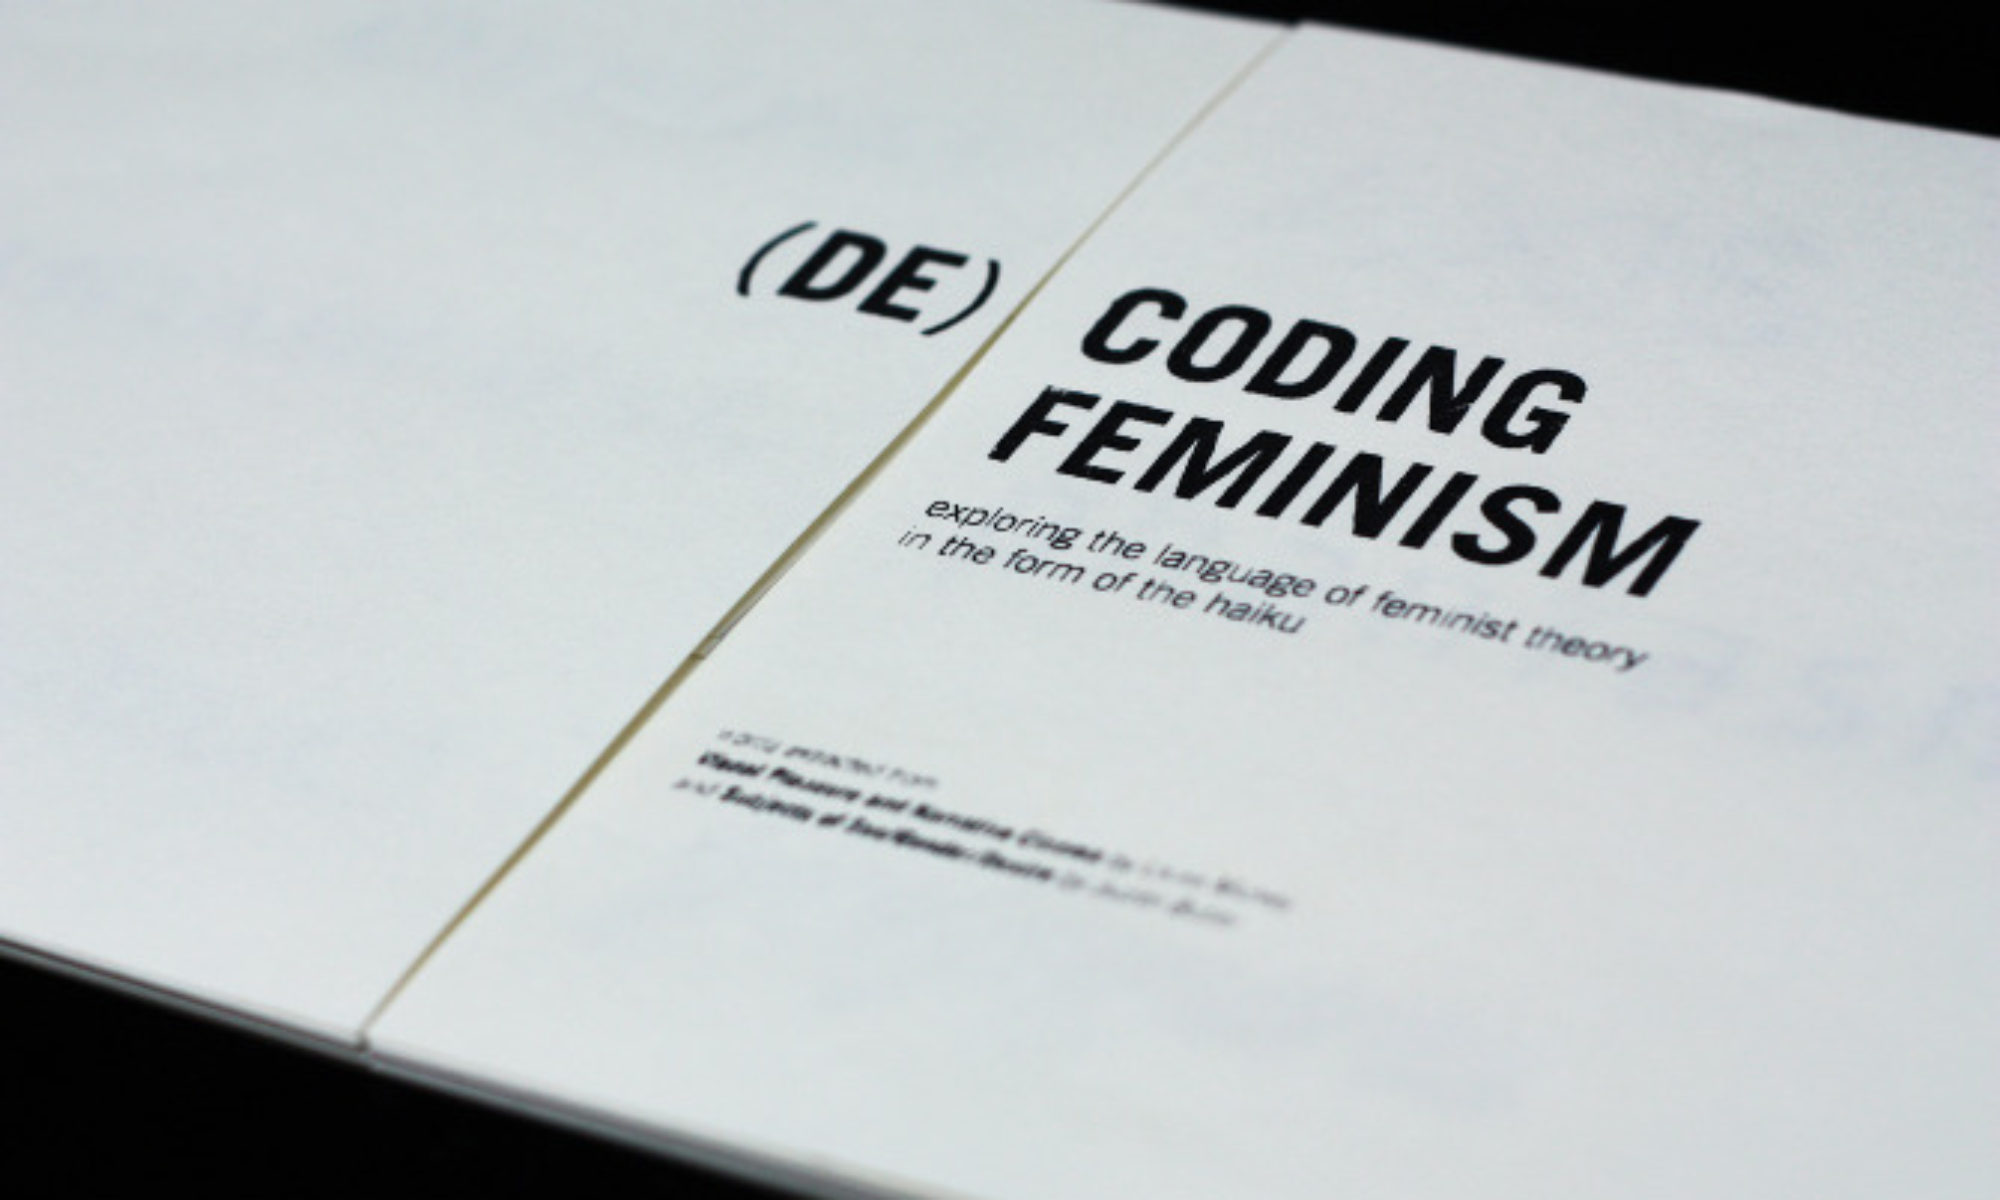 The first page of an artist book called De-coding Feminism, created by Zhenqi Ong.